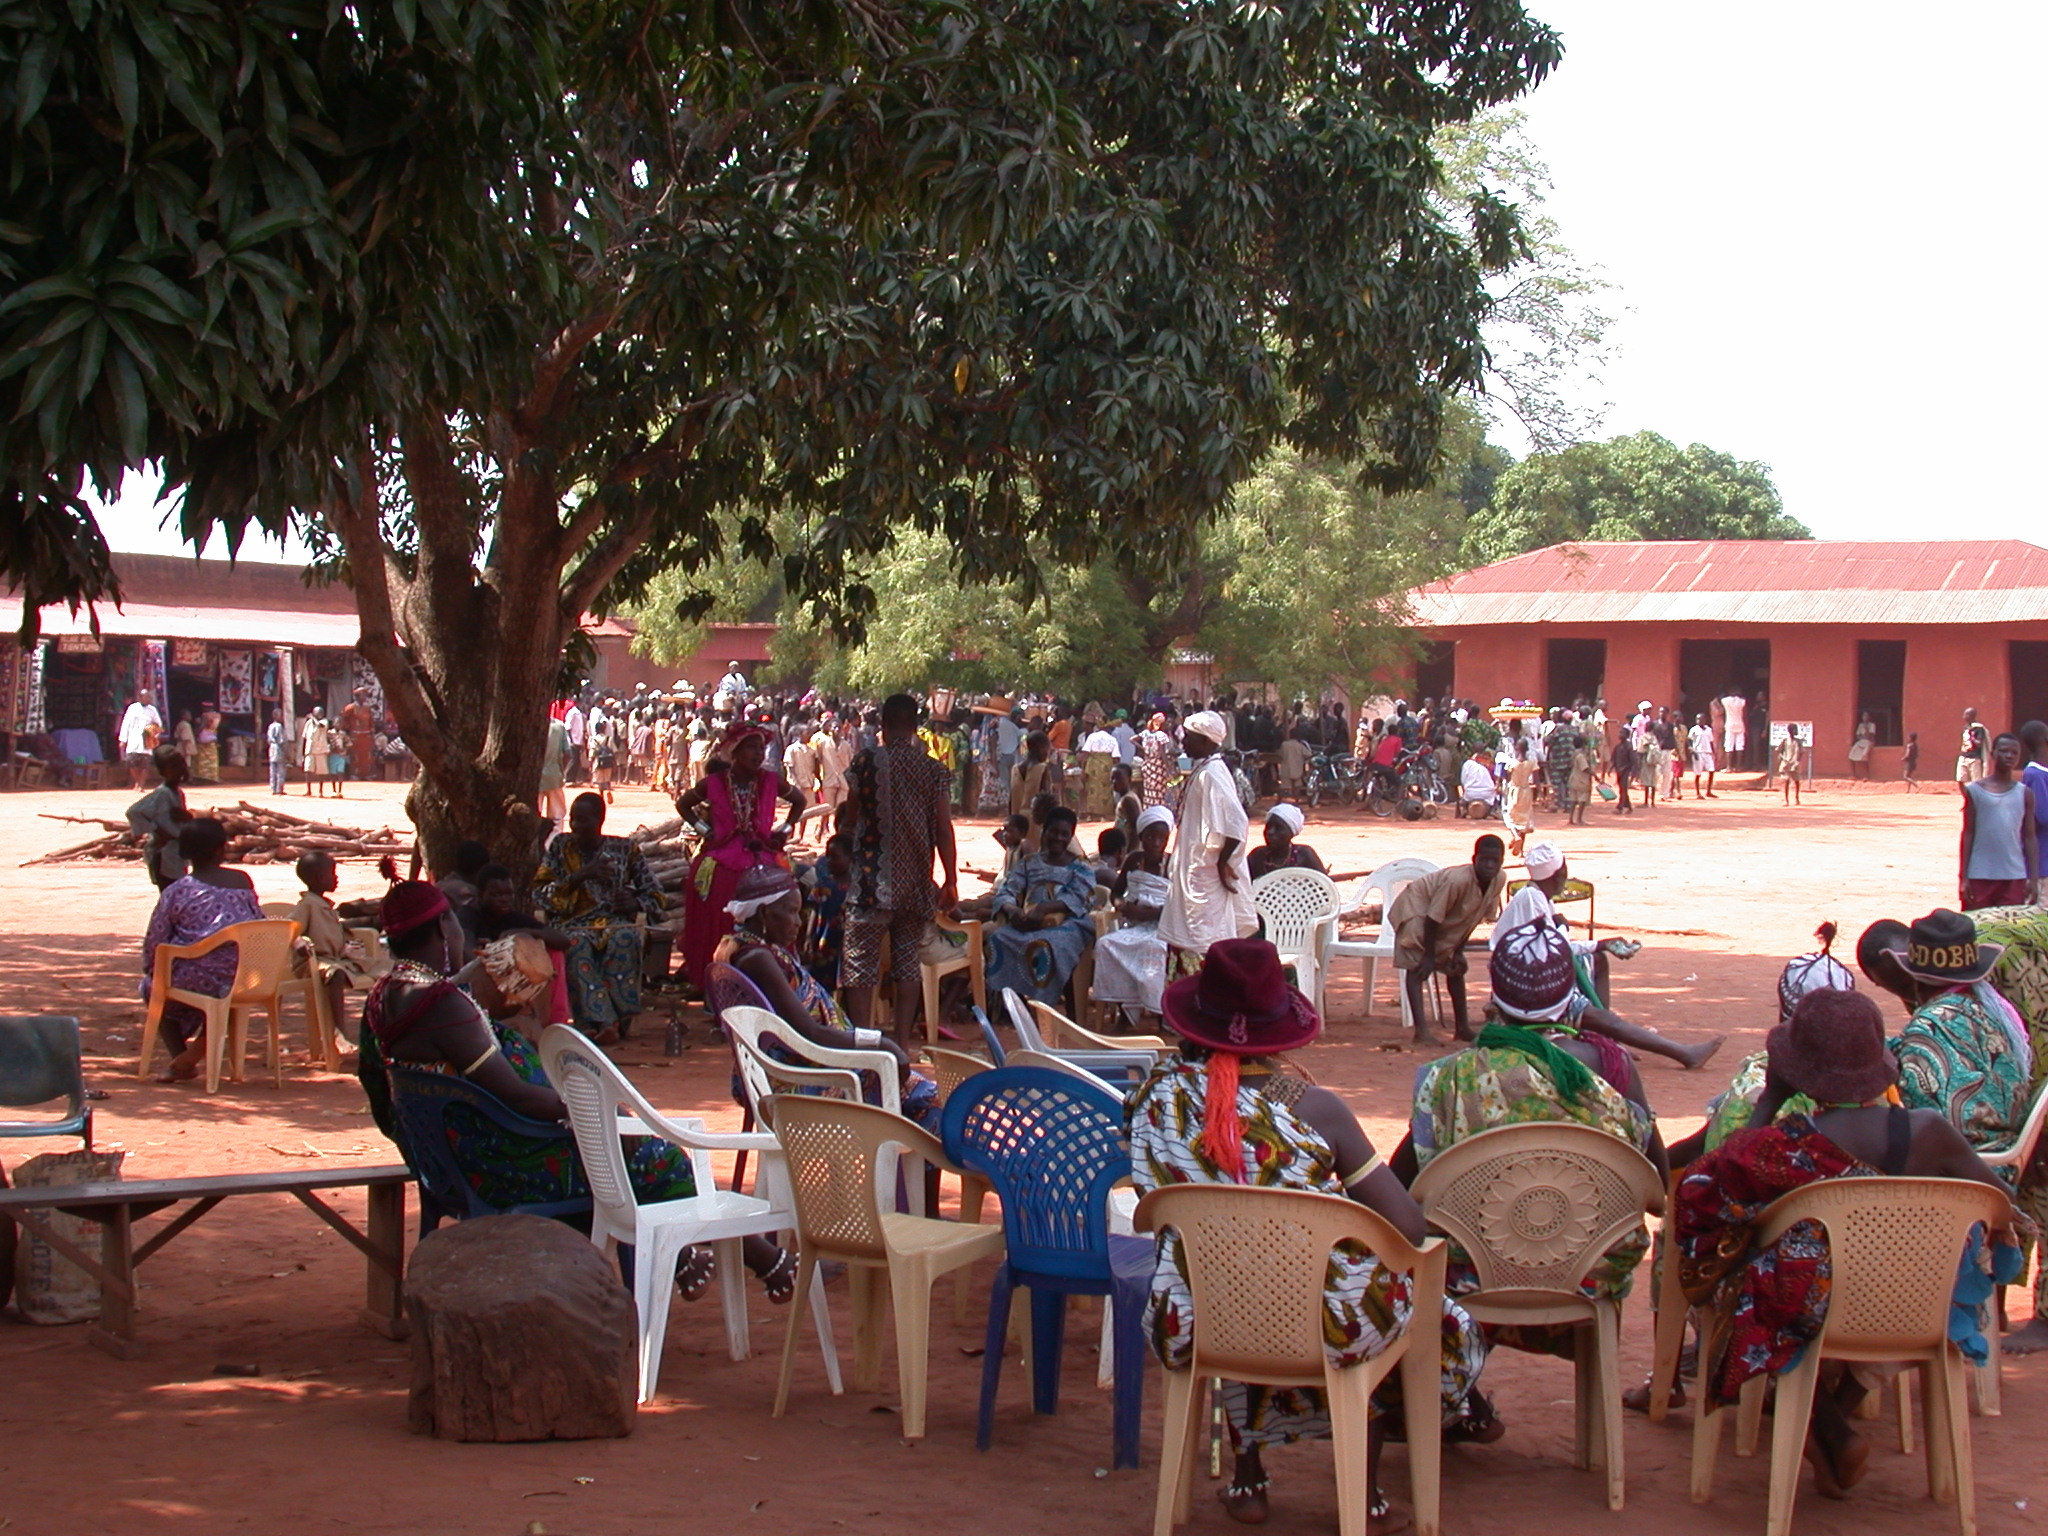 Moments of Relaxation, Danxome Festival Celebrations at Palace Grounds, Abomey History Museum, Abomey, Benin